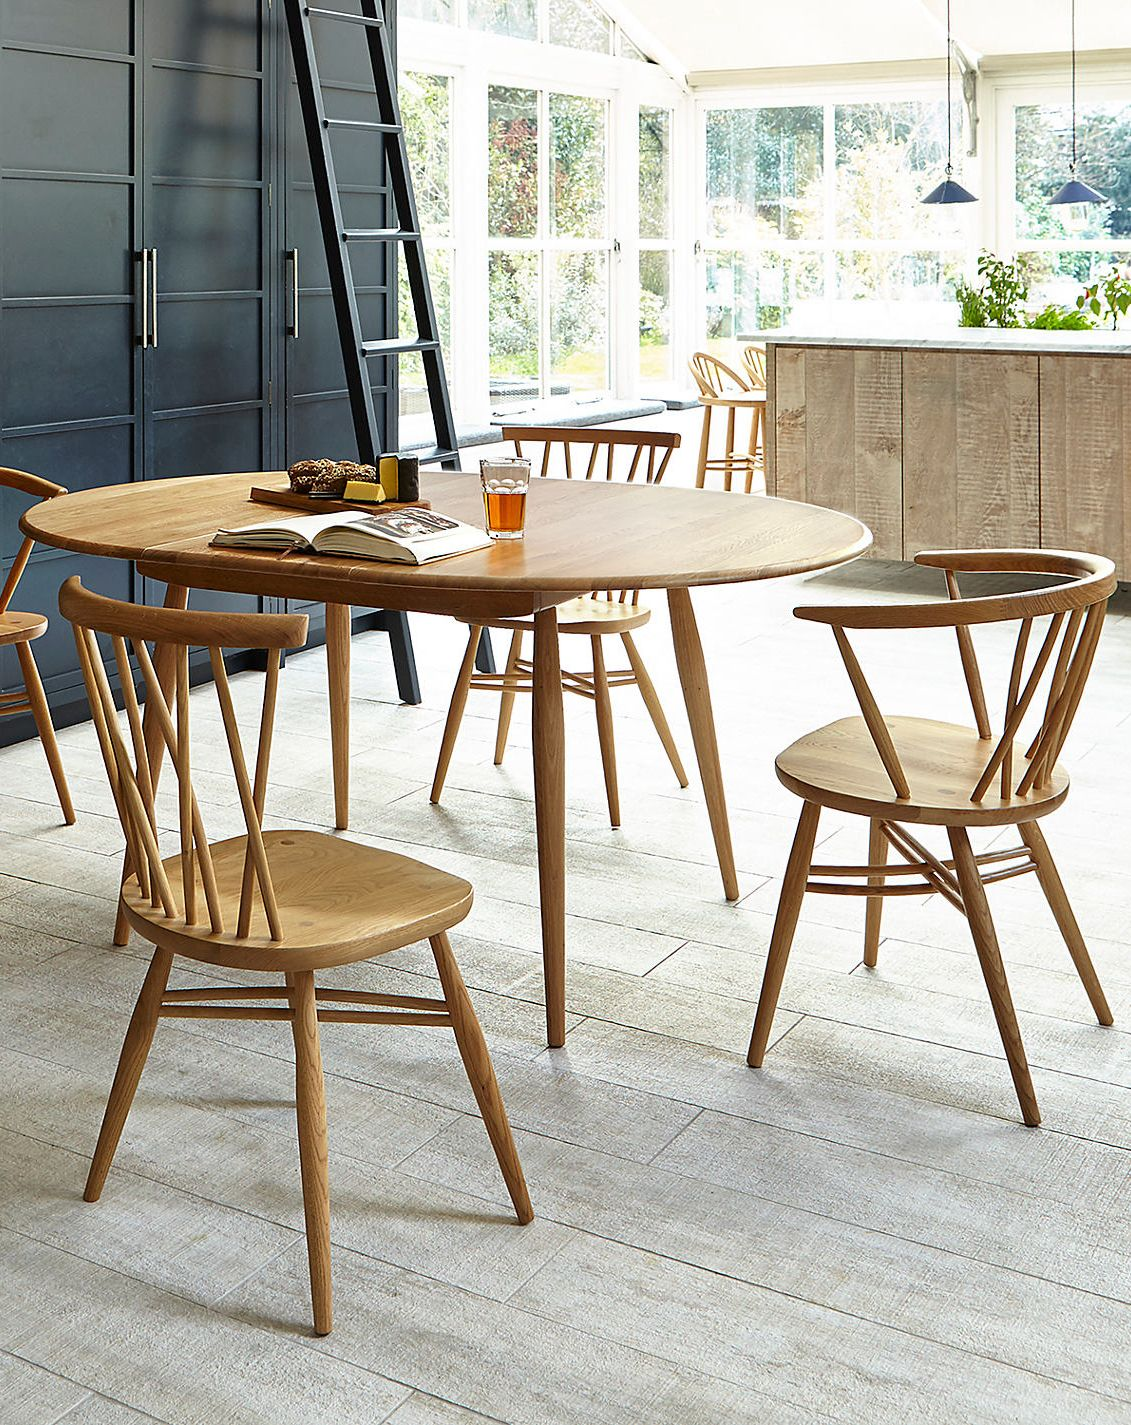 Incredible Chiltern Chair Ercol Home Decor Ercol Dining Chairs 4 Download Free Architecture Designs Licukmadebymaigaardcom